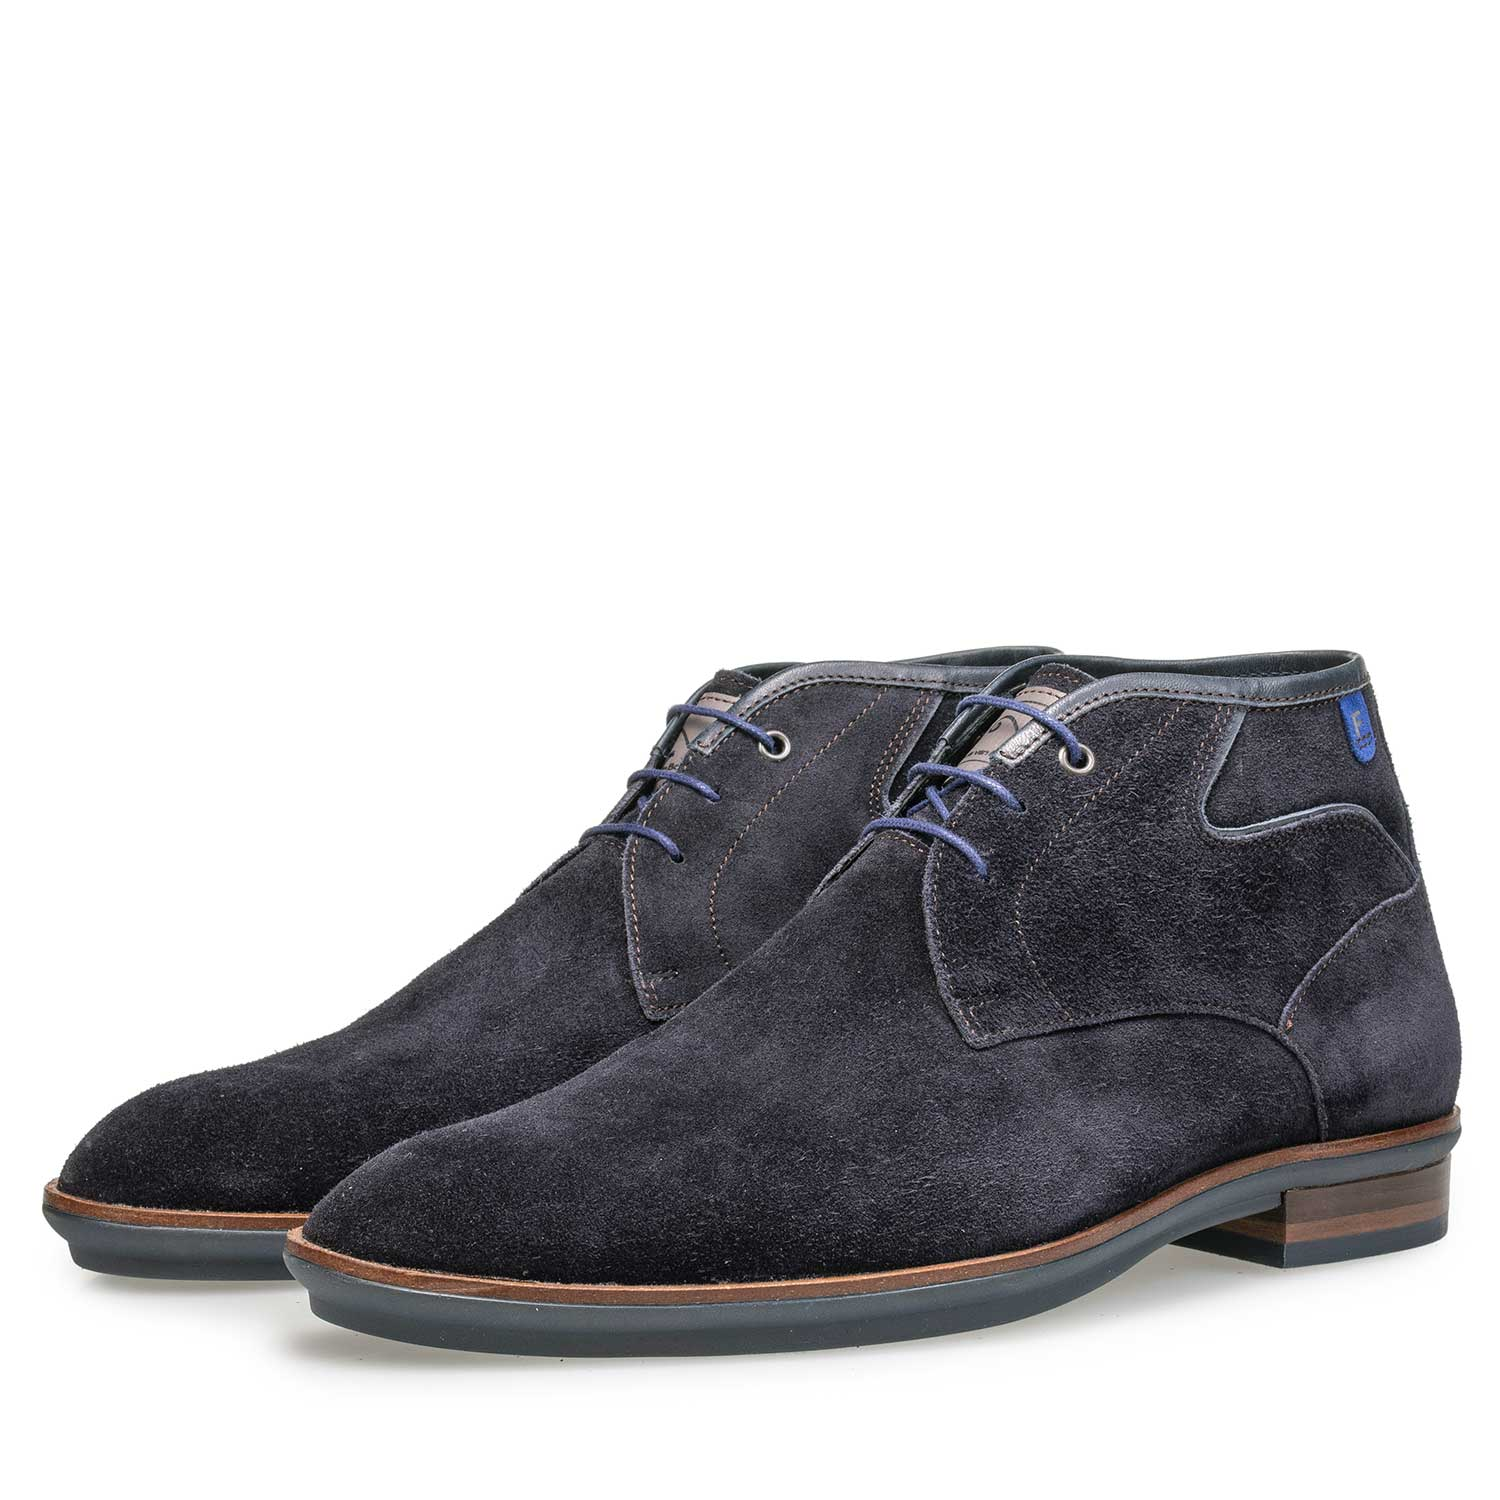 10156/03 - Dark blue suede leather lace boot